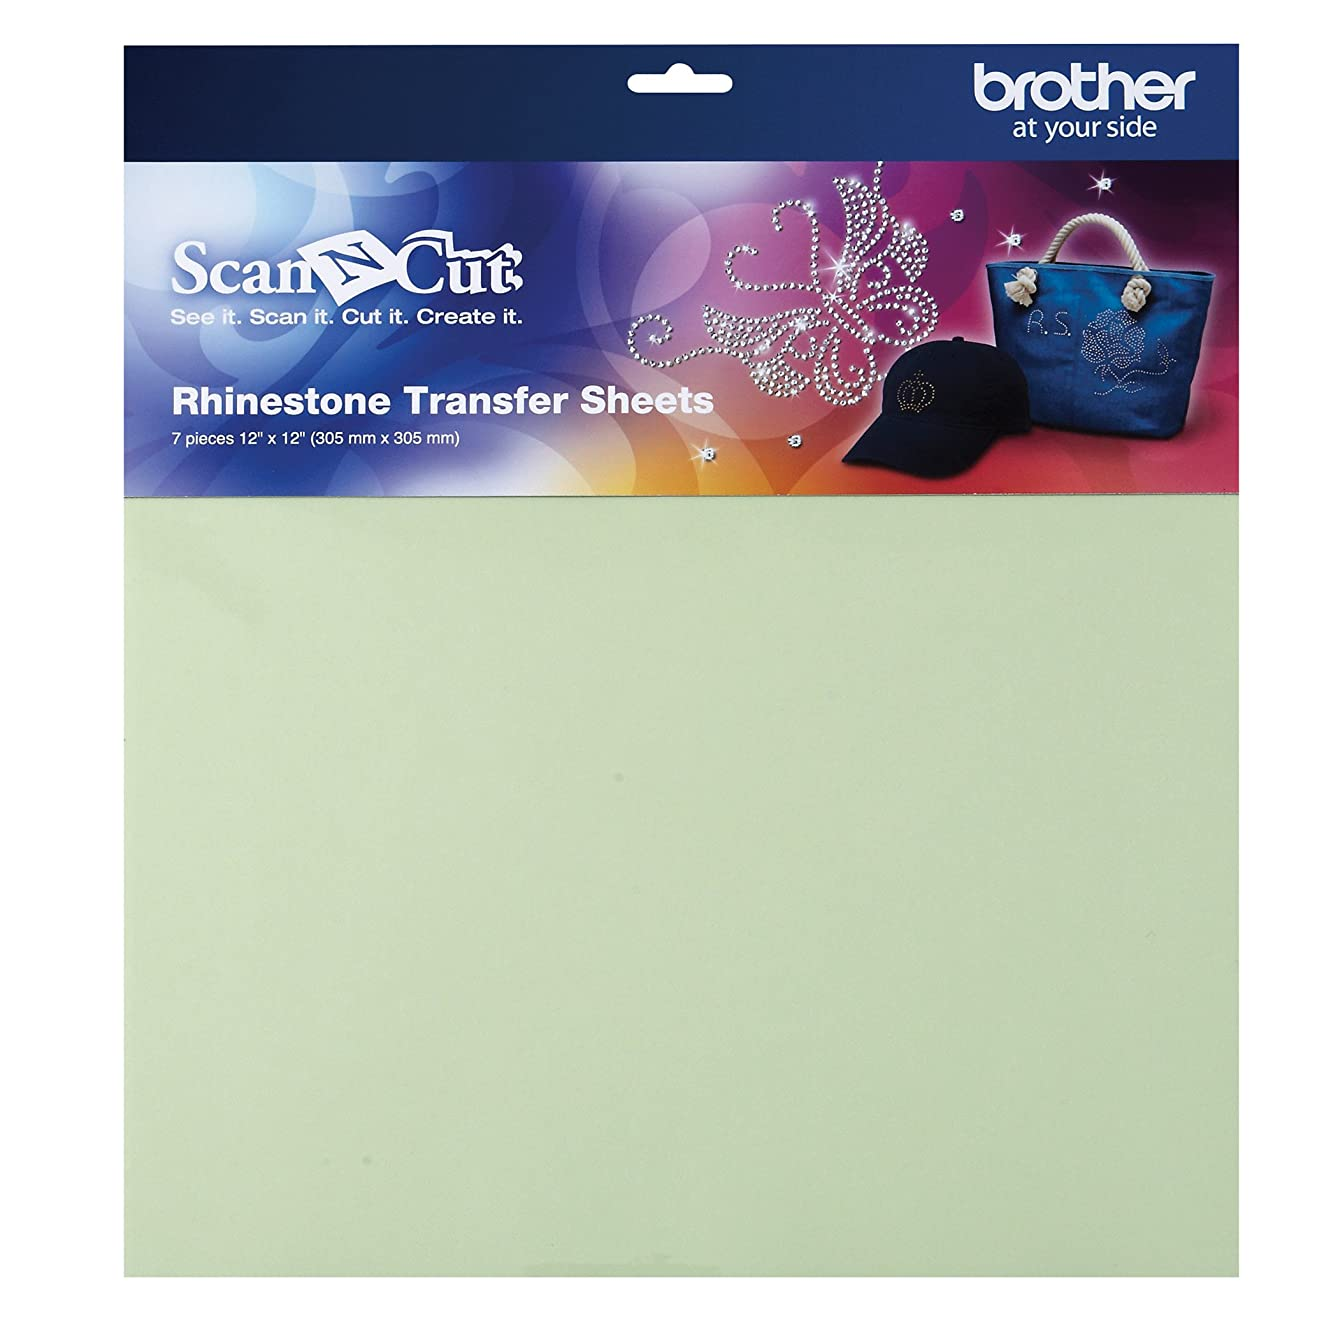 Brother ScanNCut CARSTS1 Rhinestone Transfer Sheets